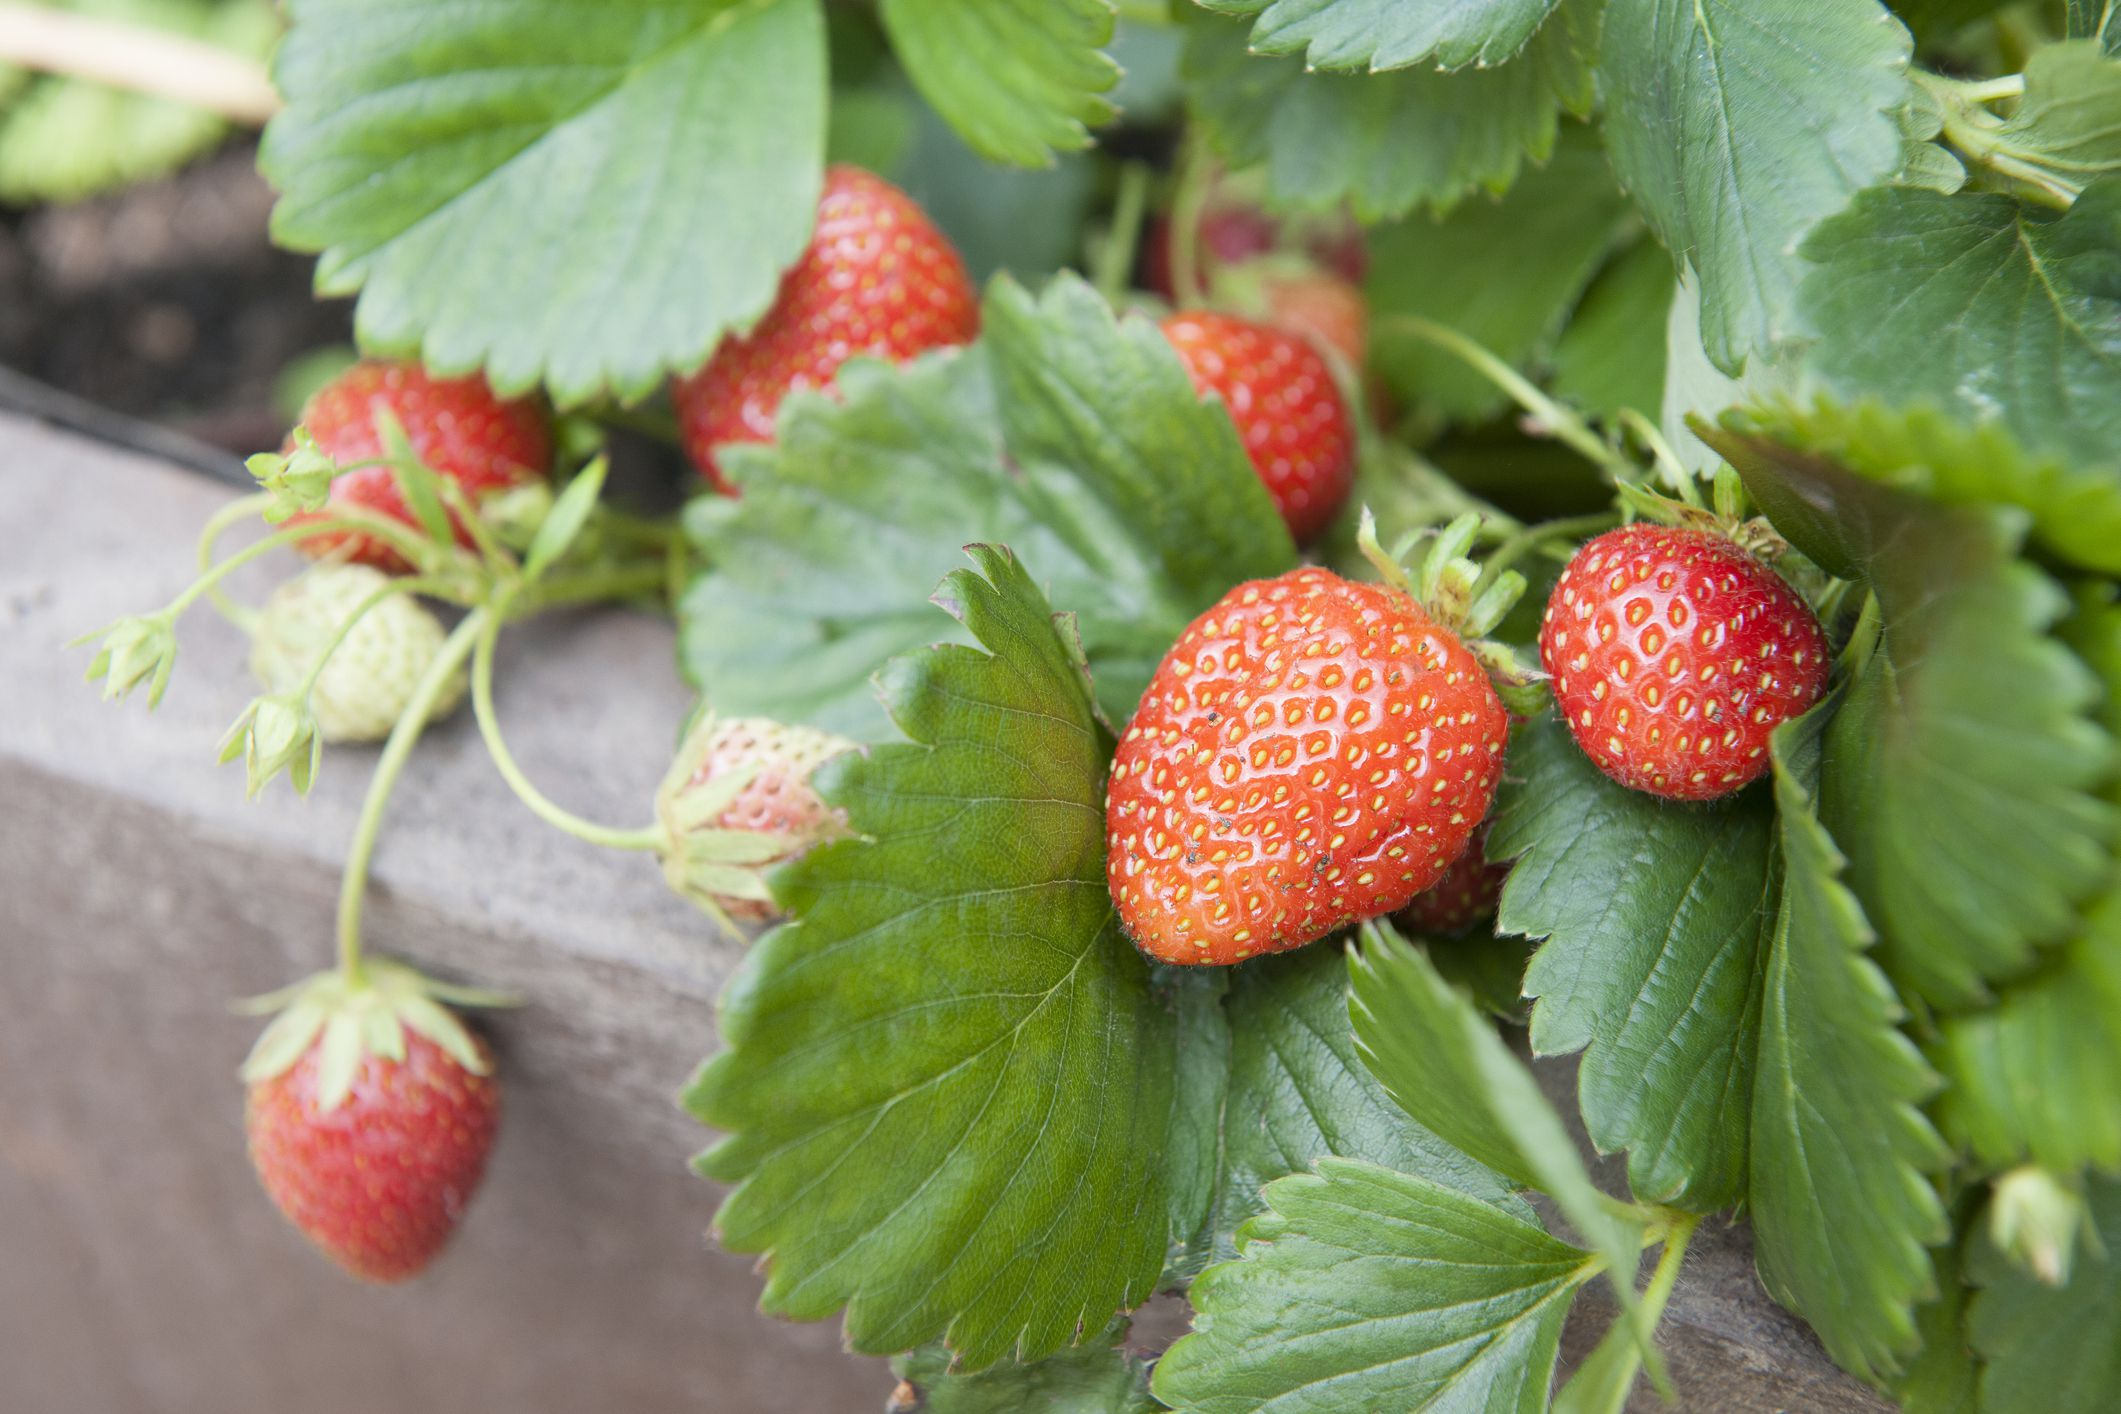 Garden Strawberry Plant Profile: Care and Growing Guide